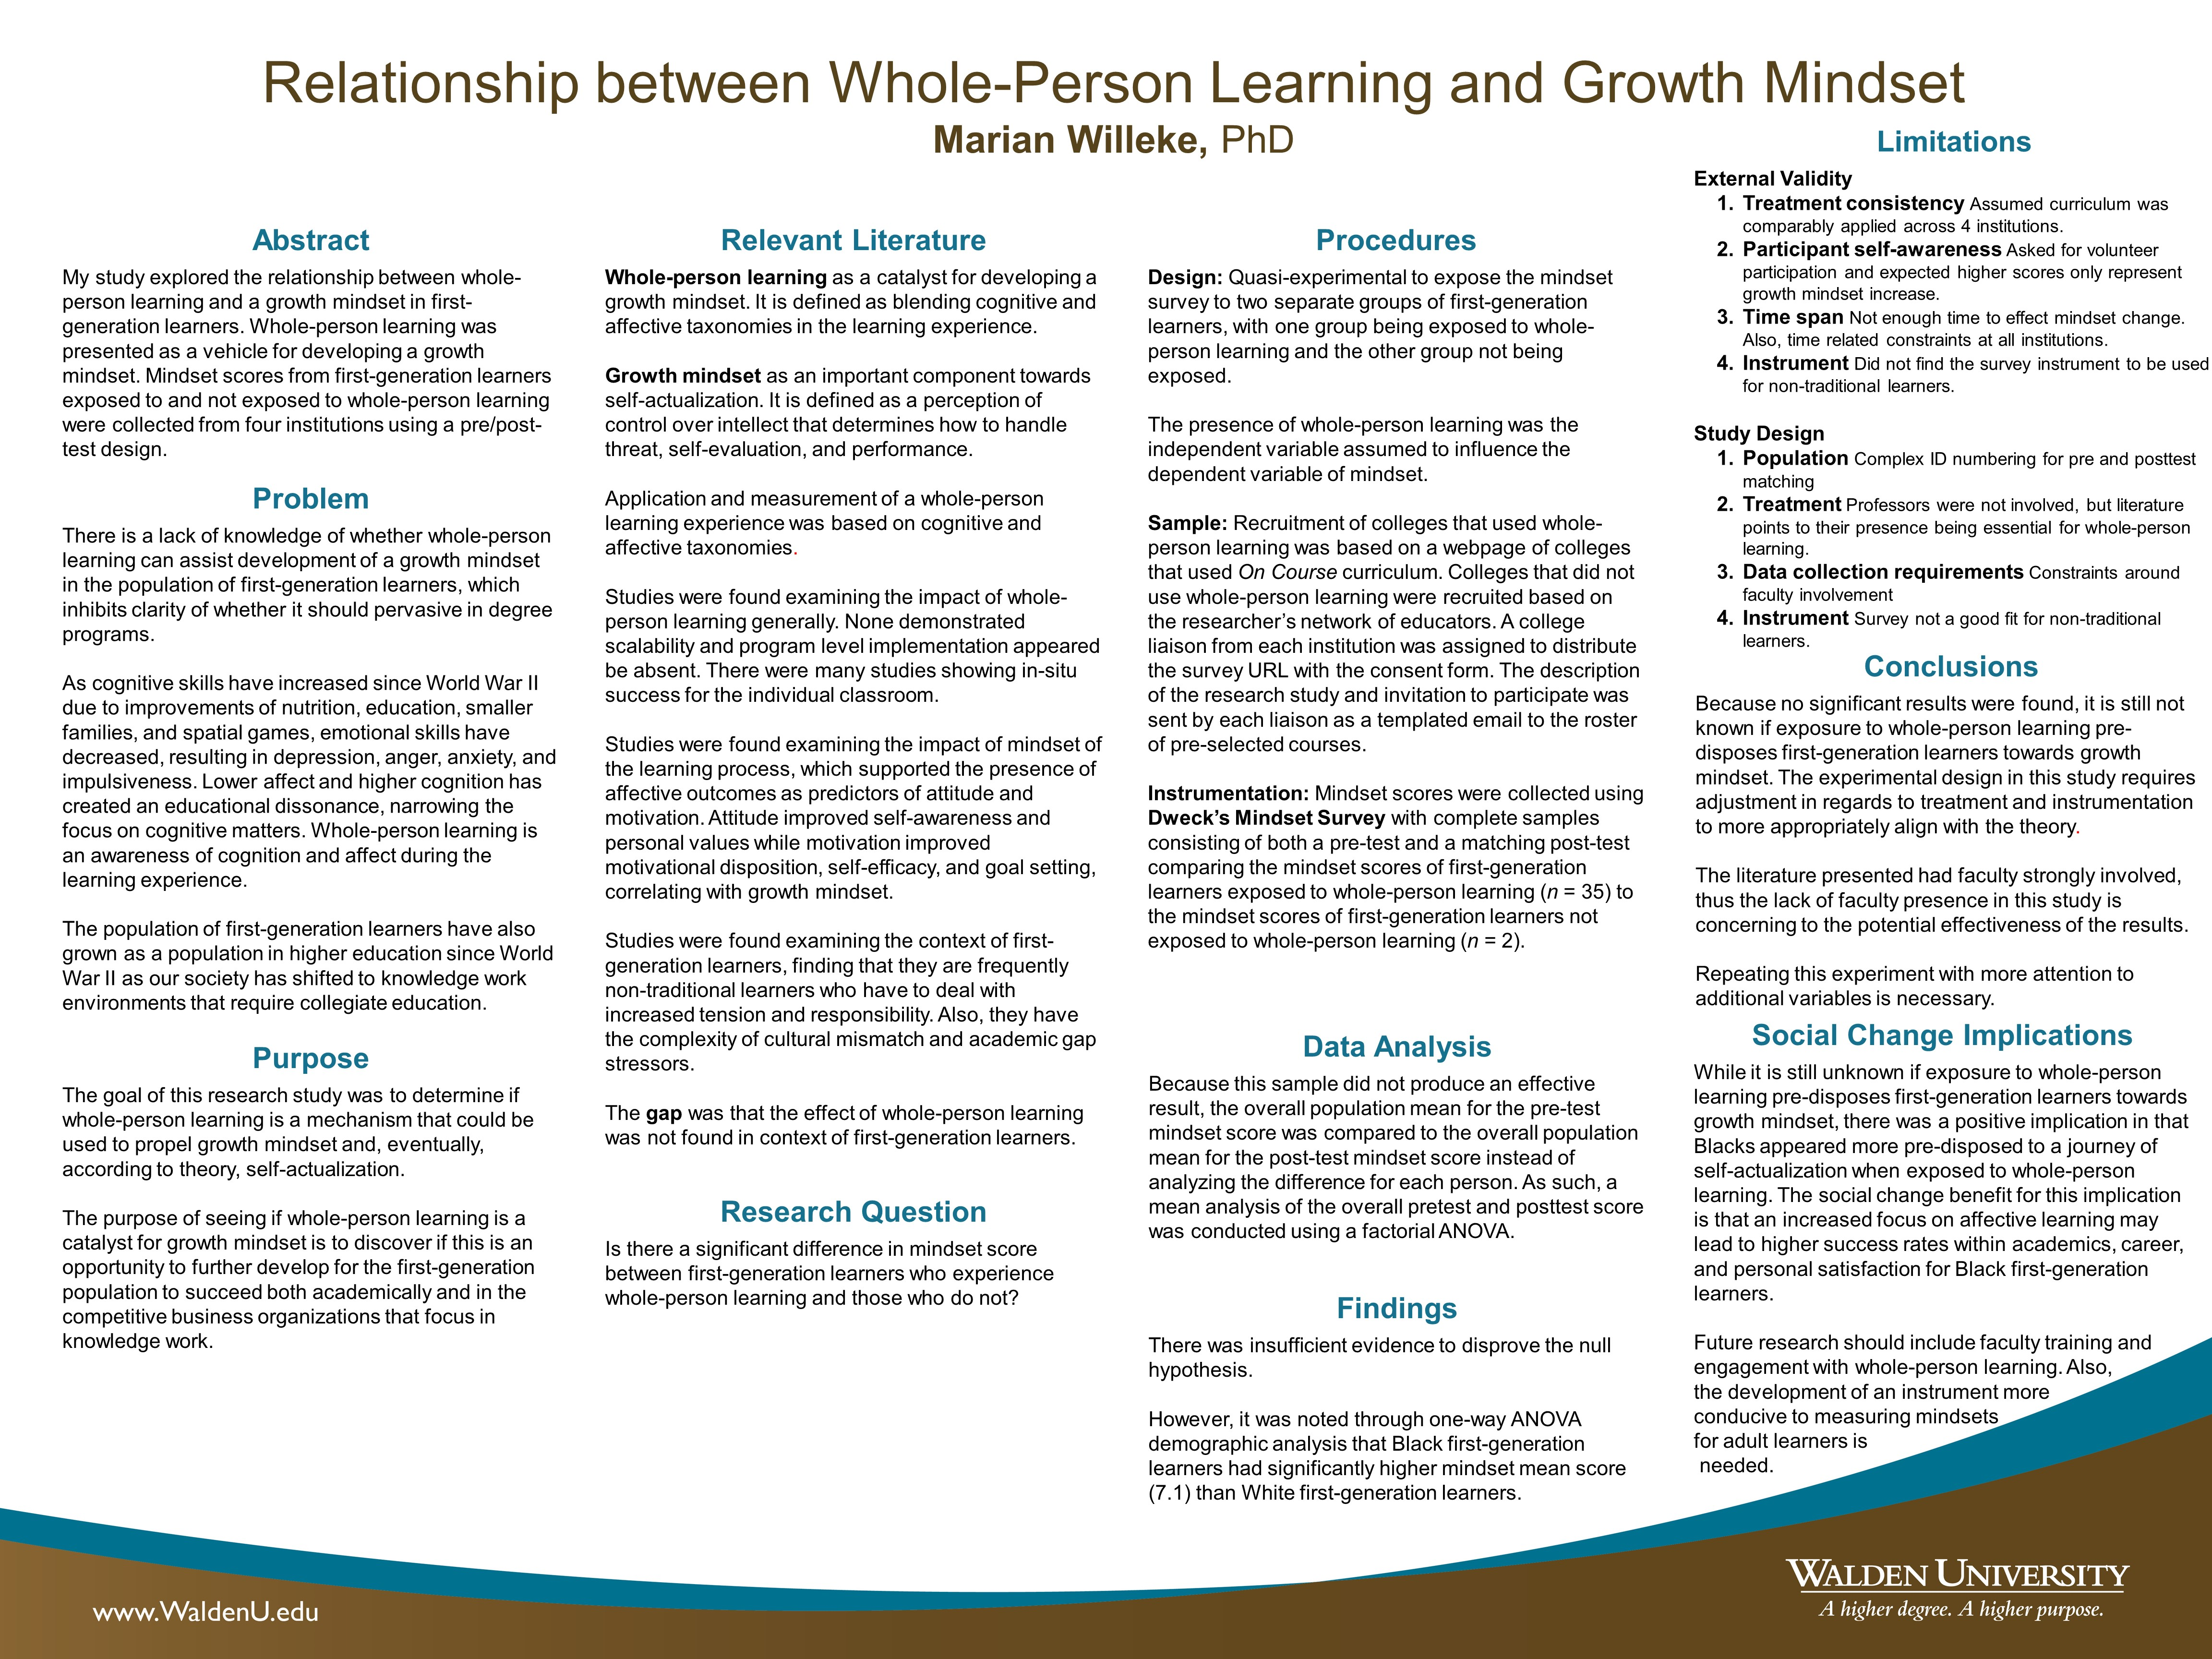 Growth Mindset For Adult Learners